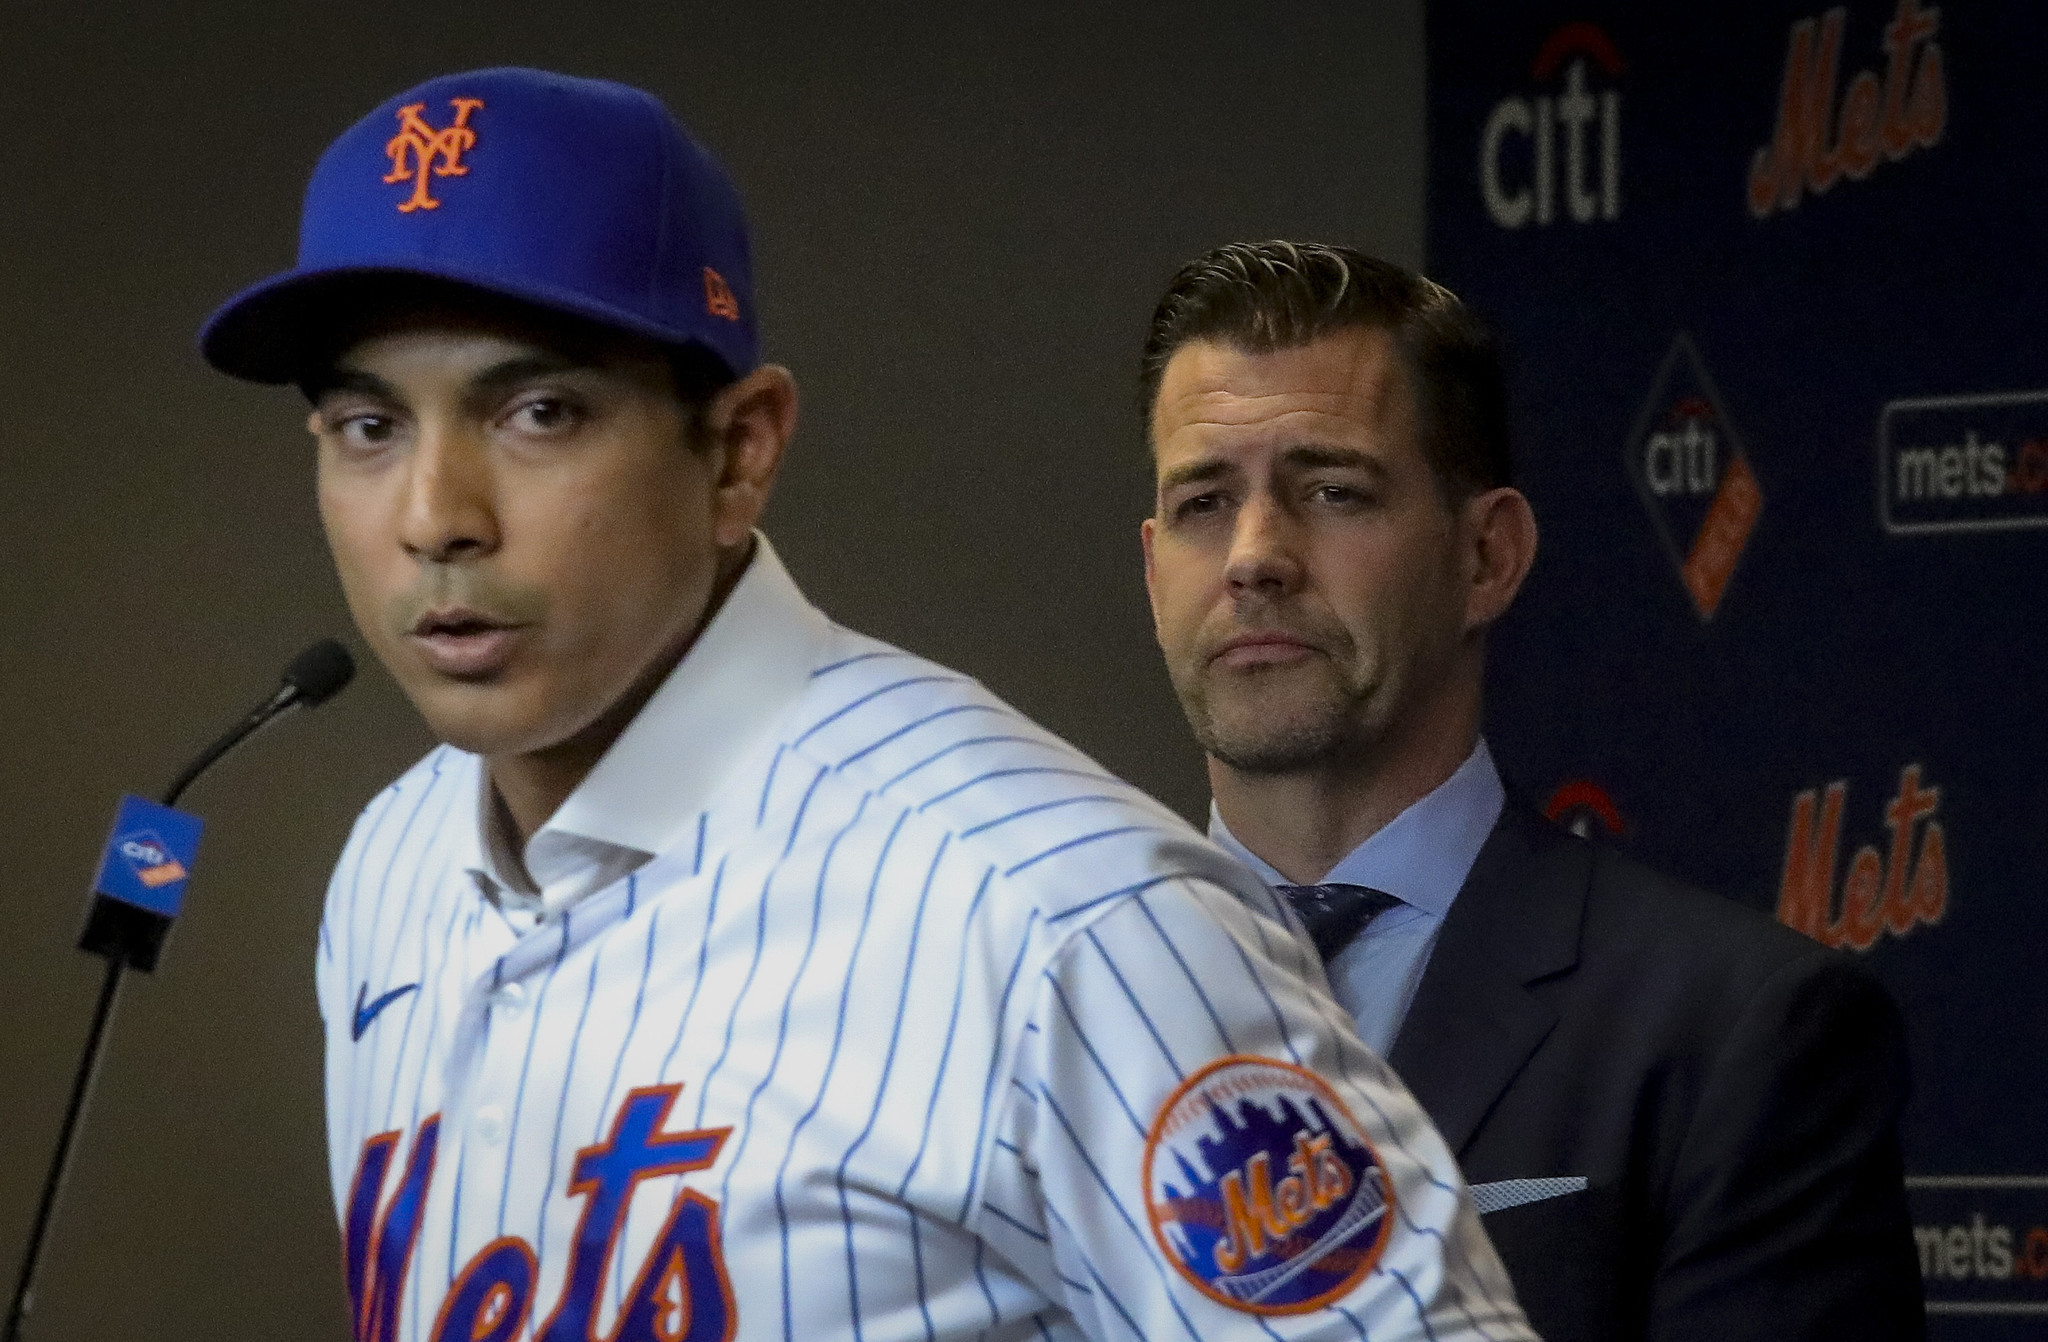 Mets players are rallying behind Luis Rojas